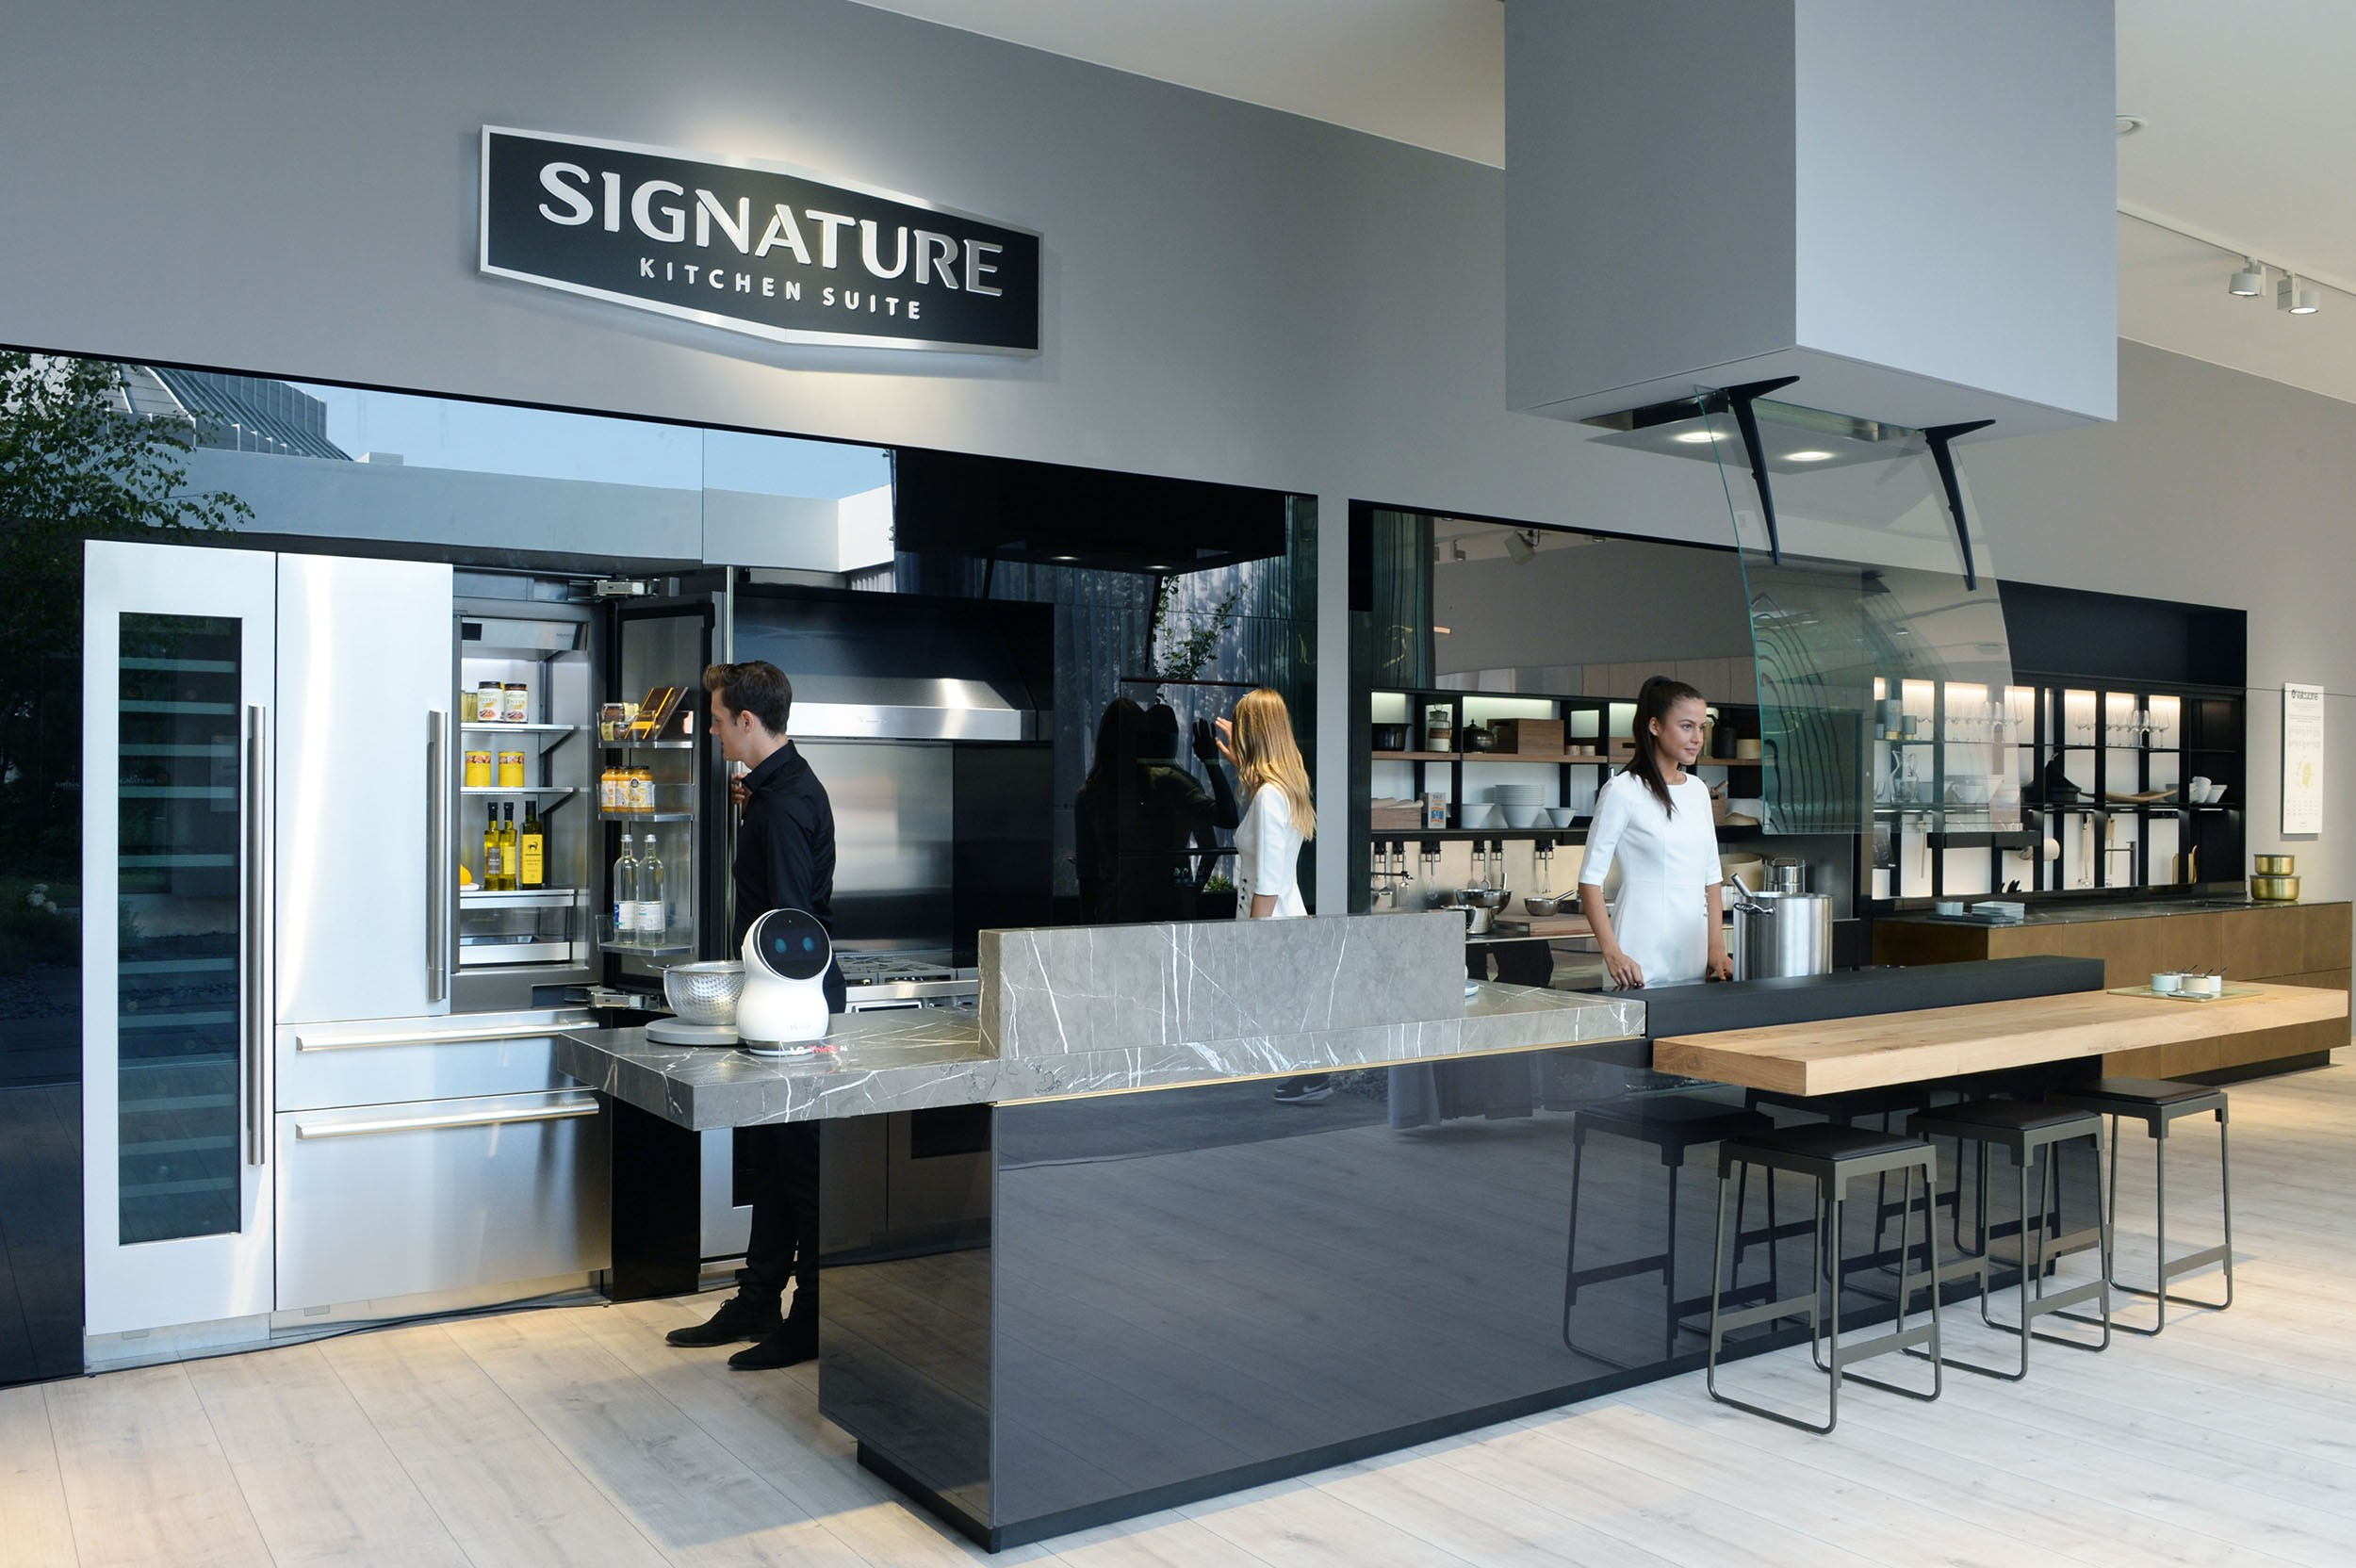 Models pose with SIGNATURE KITCHEN SUITE at IFA 2018.